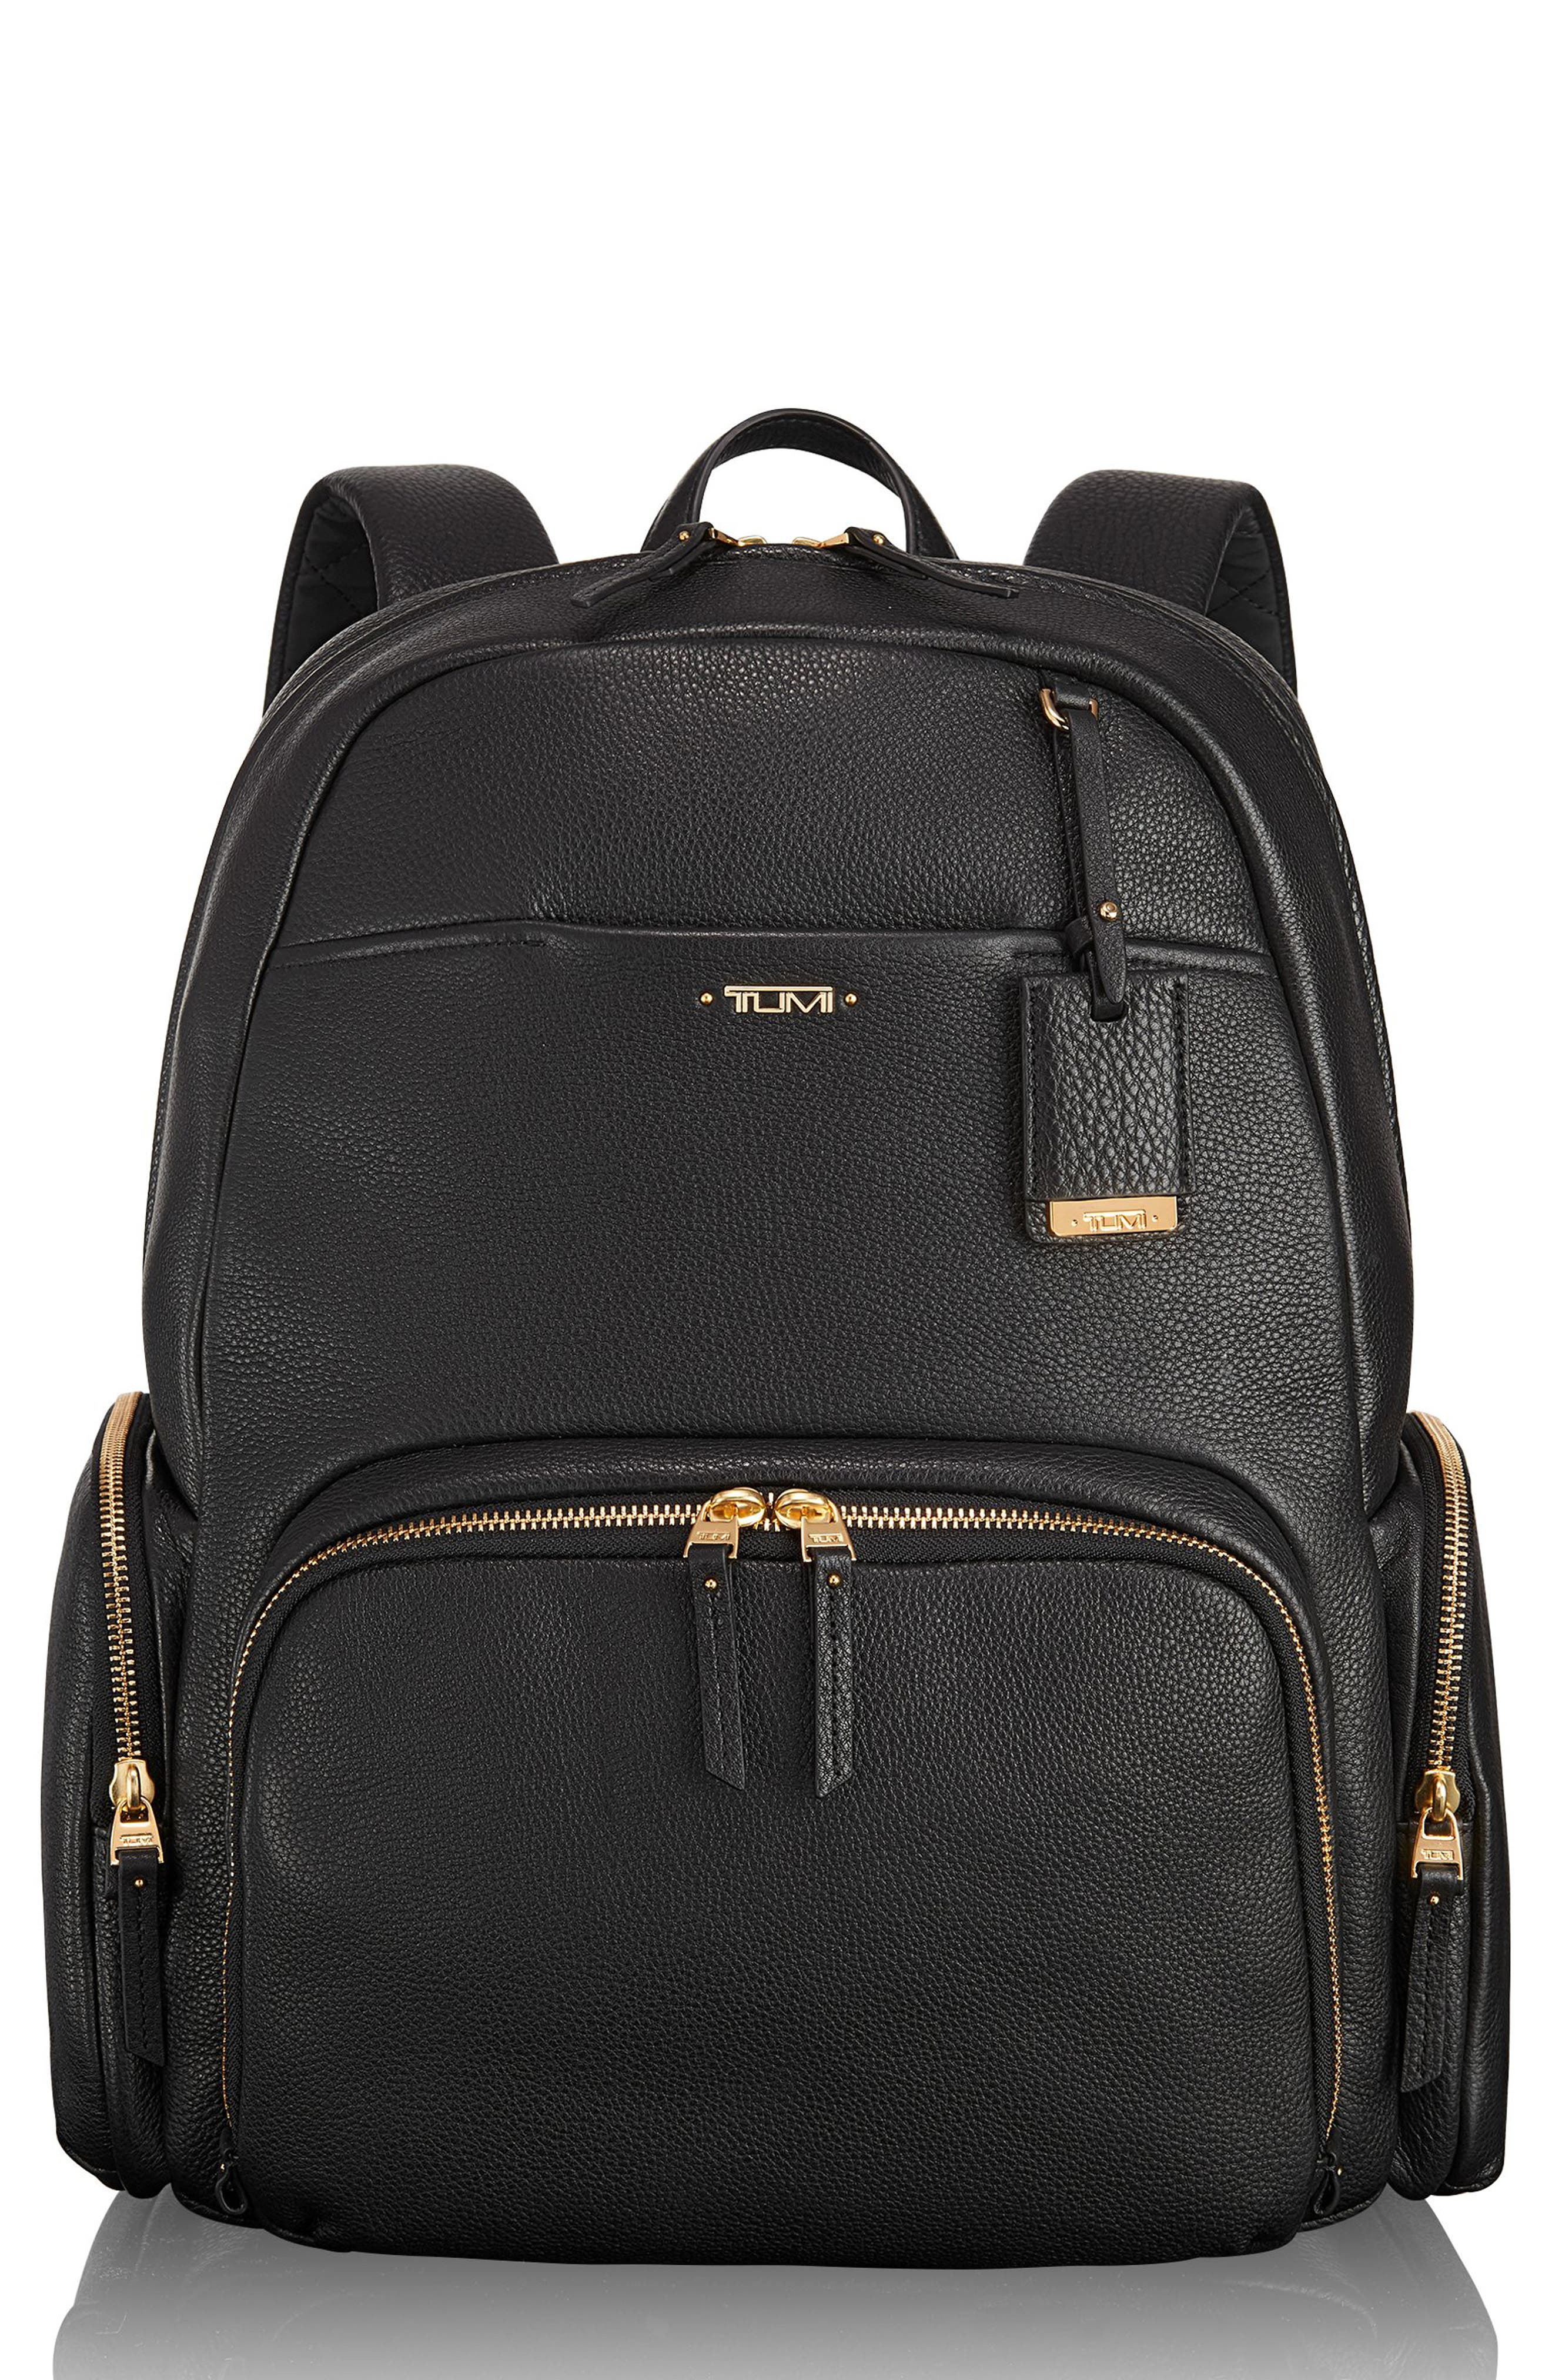 Calais Leather Computer Backpack,                             Main thumbnail 1, color,                             001